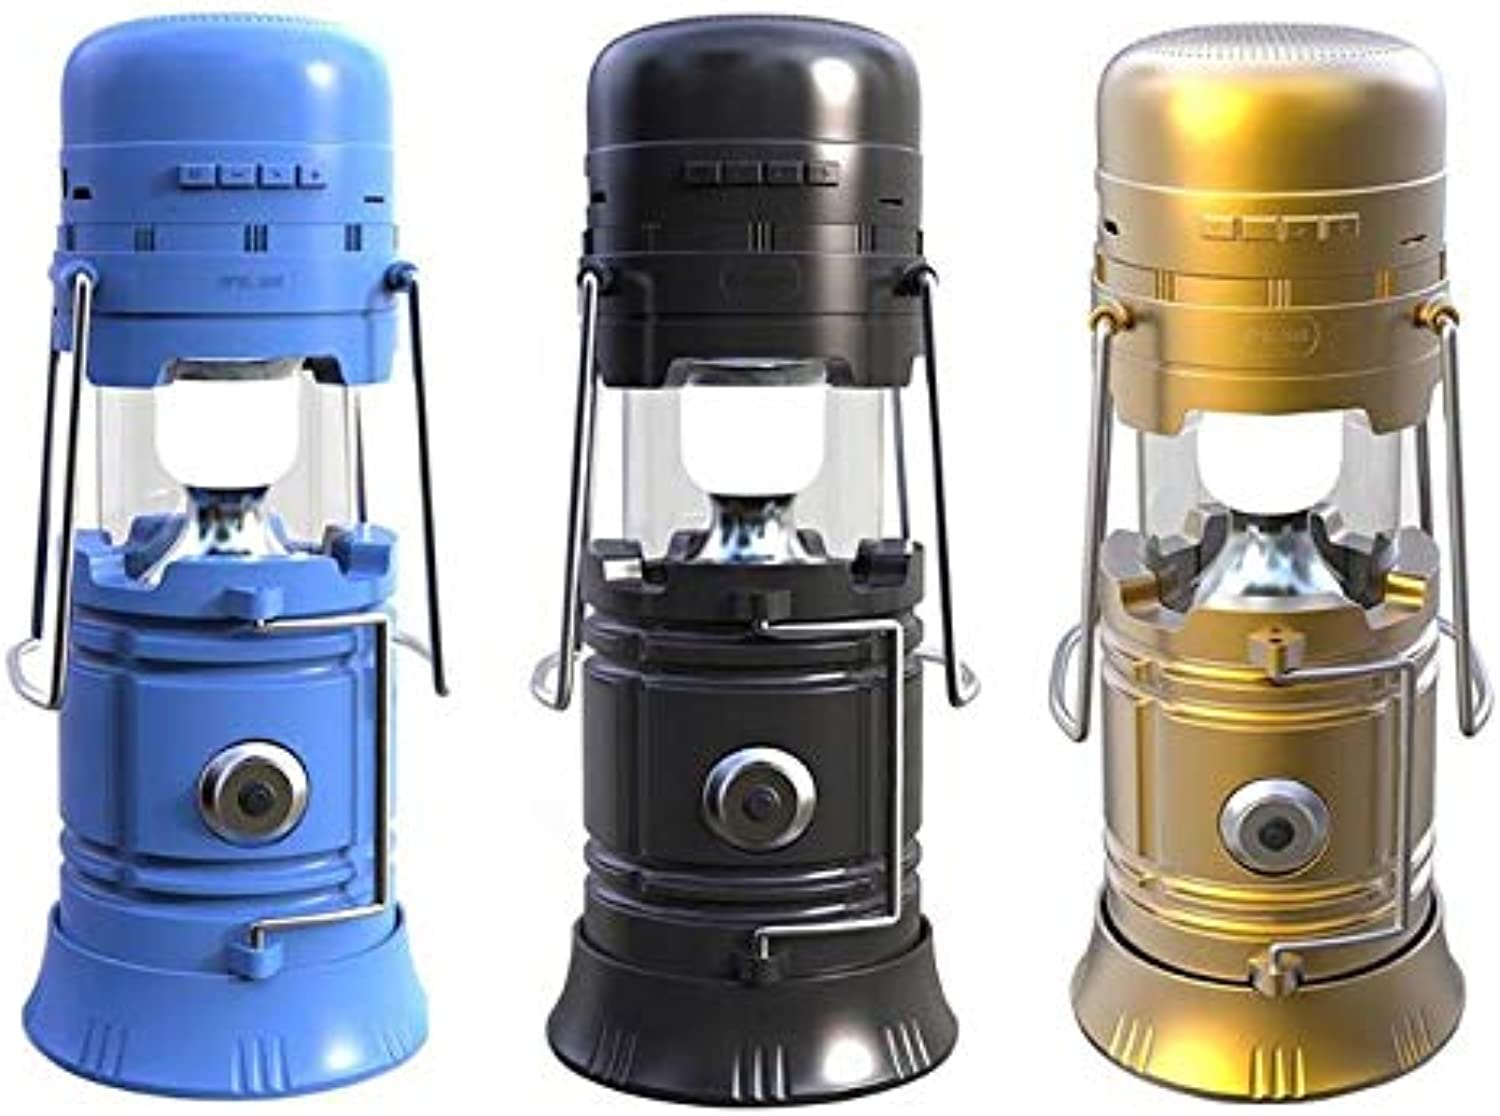 Portable LanternsDc 5v 5w Outdoor Wireless blueetooth Speaker Solar Energy Flashlight TorchLanterns Rechargeable Hausbell Battery Powered Portable